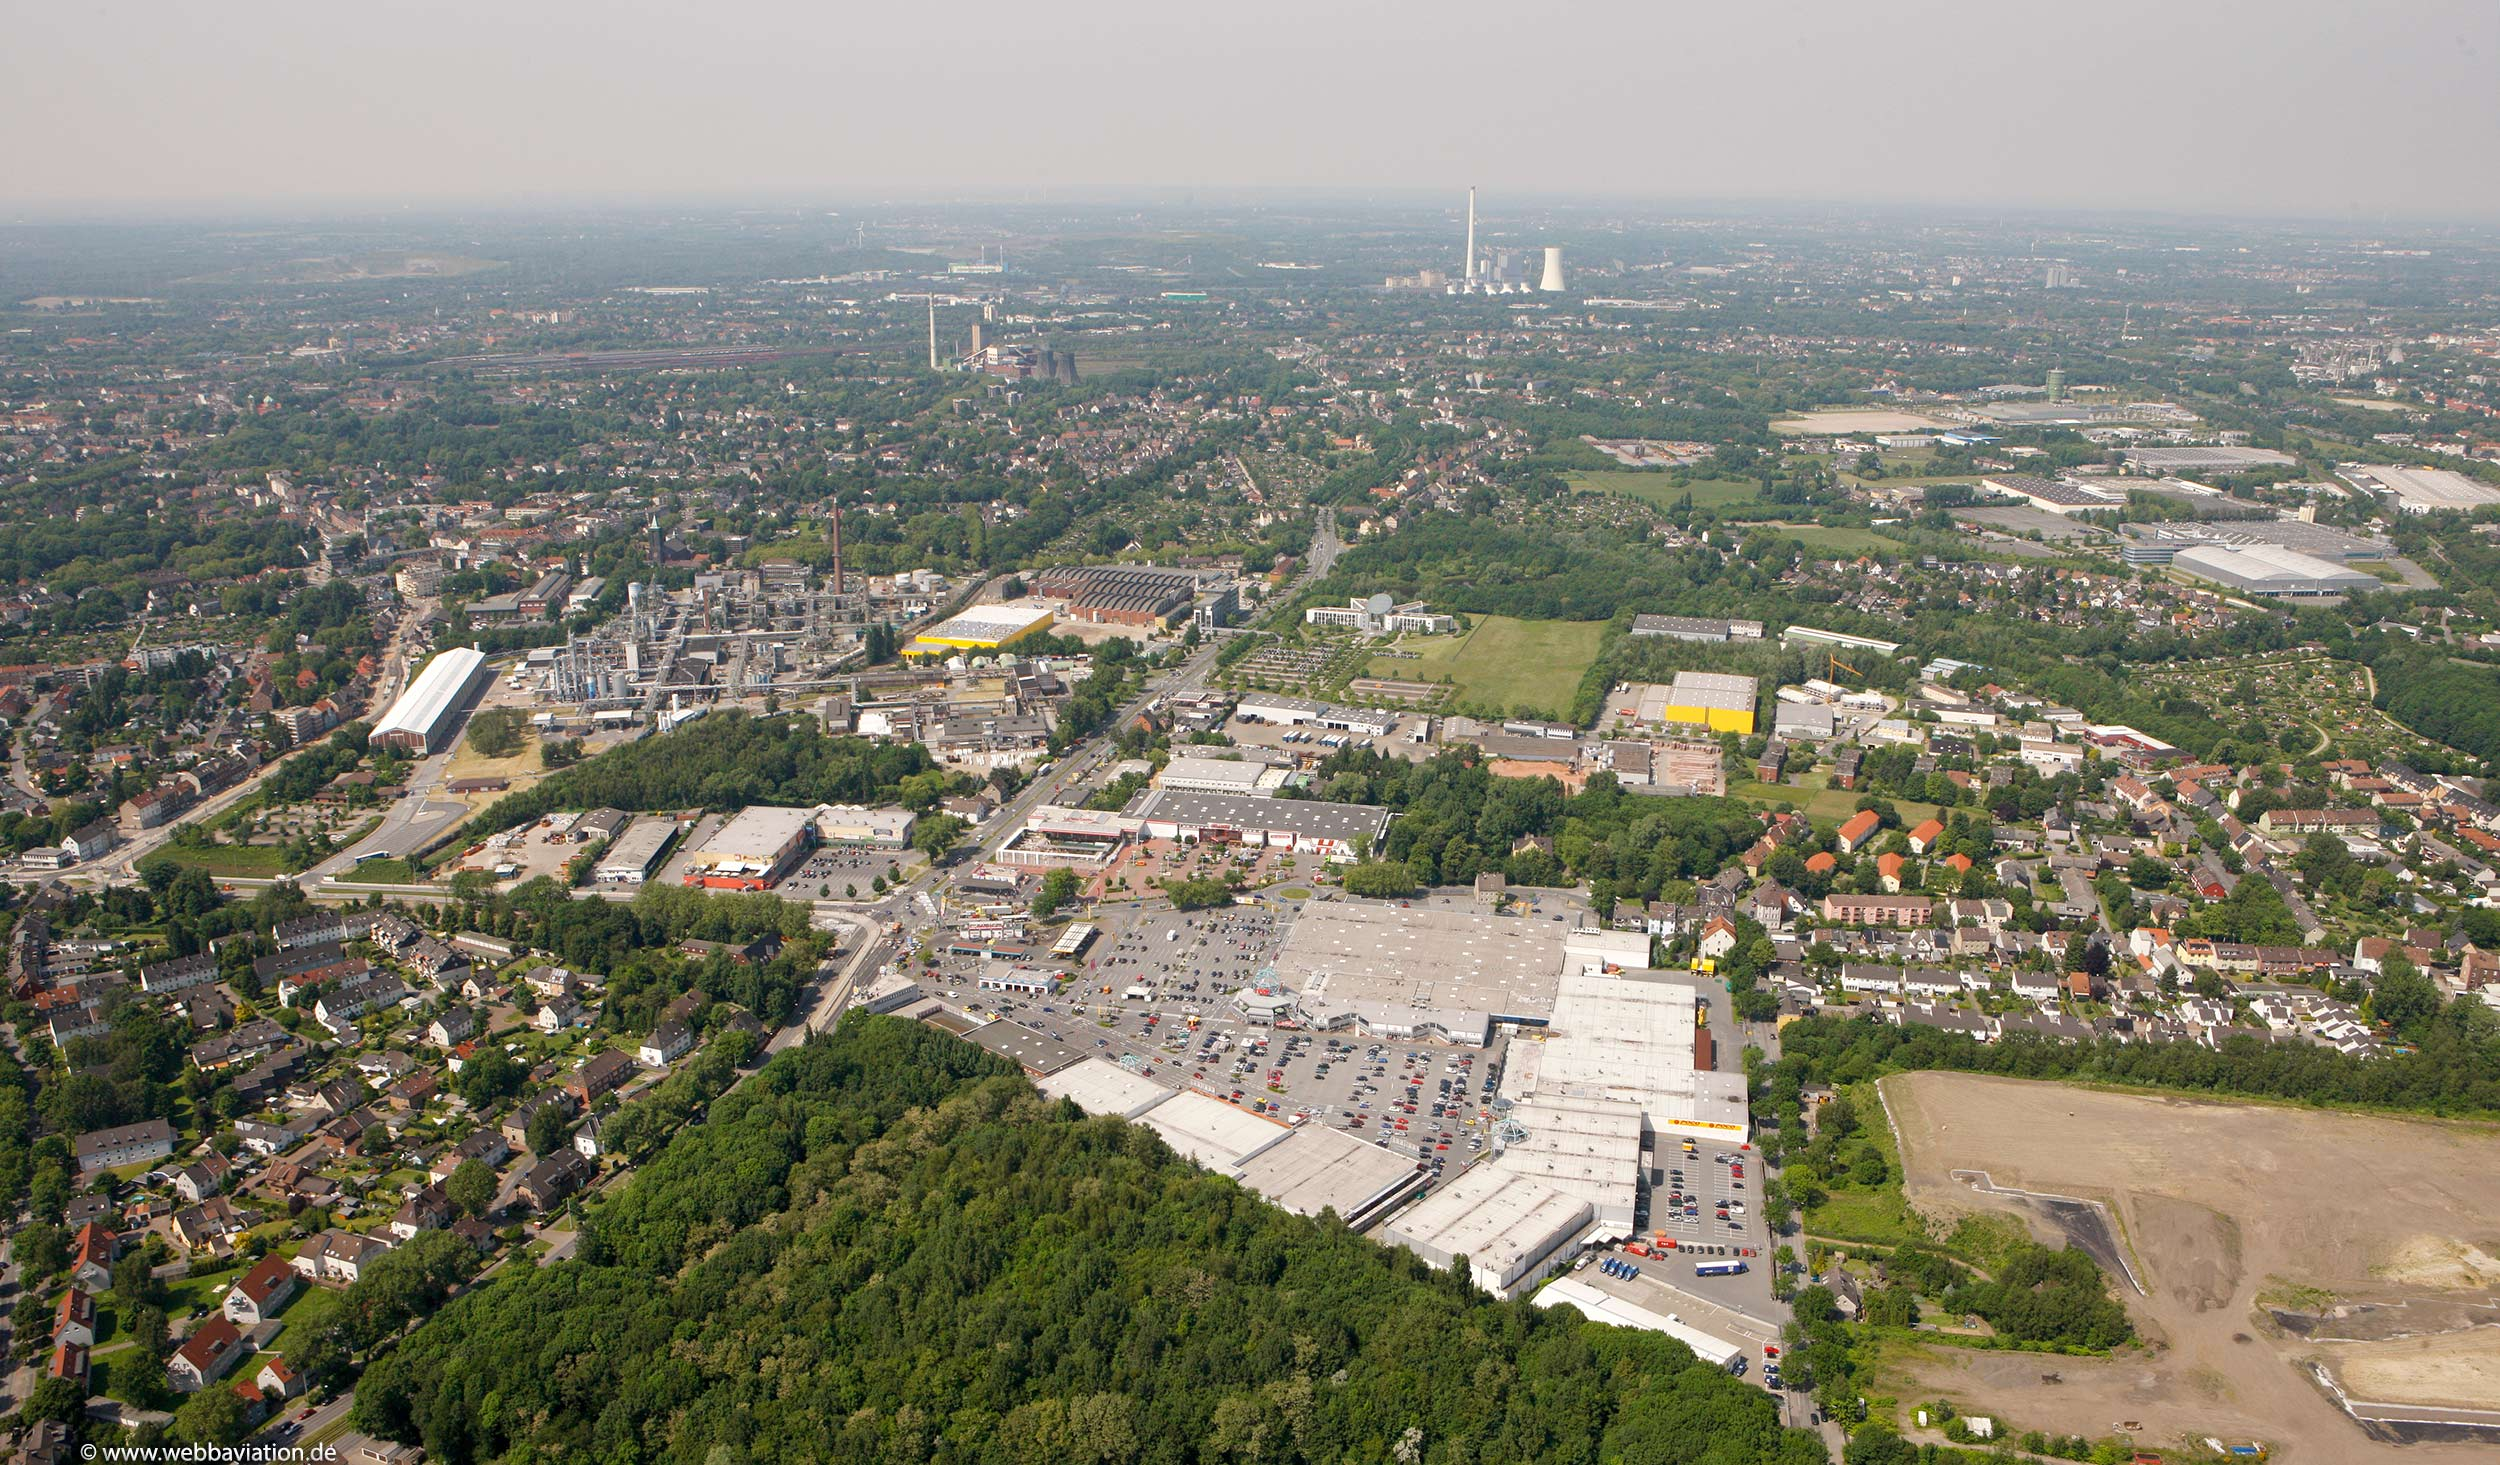 HanibalEinkaufscentrum-db40109.jpg